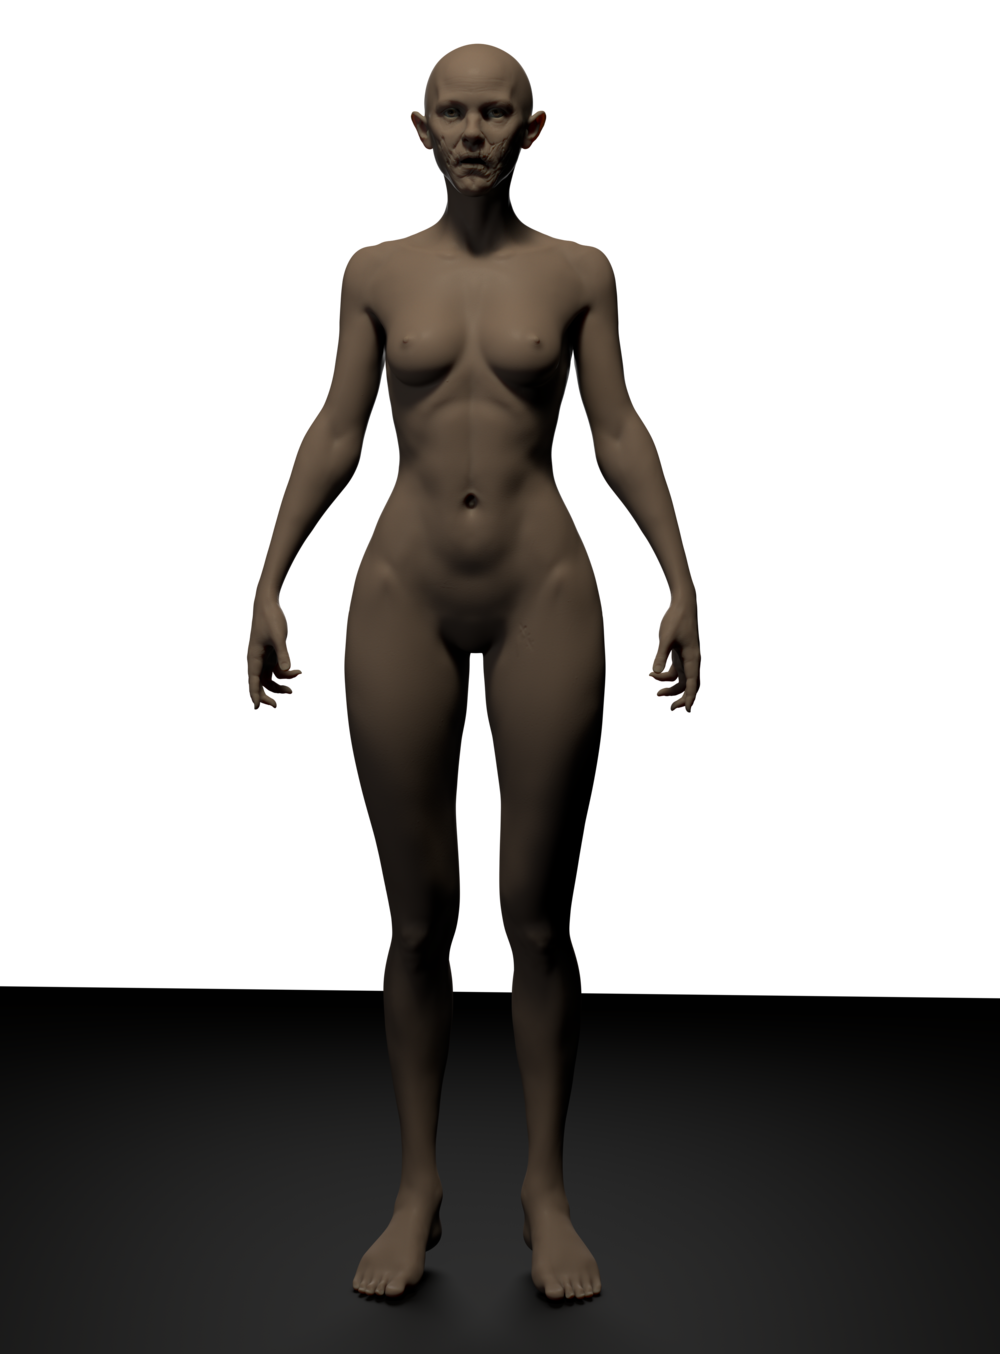 Anabelle_Jones_Body_Displace_07.png